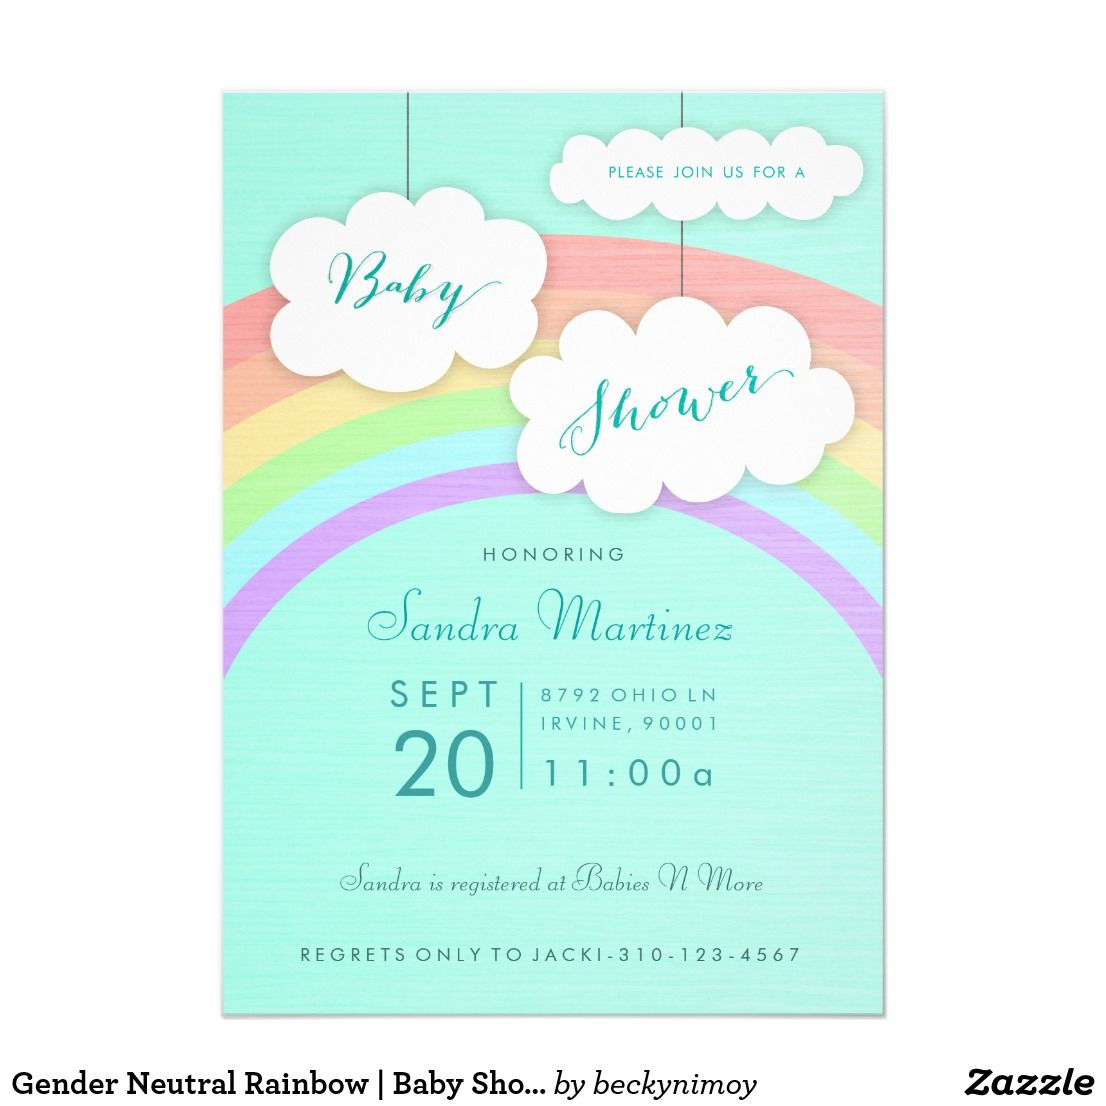 Gender Neutral Rainbow  Baby Shower Invitation  Gender Neutral